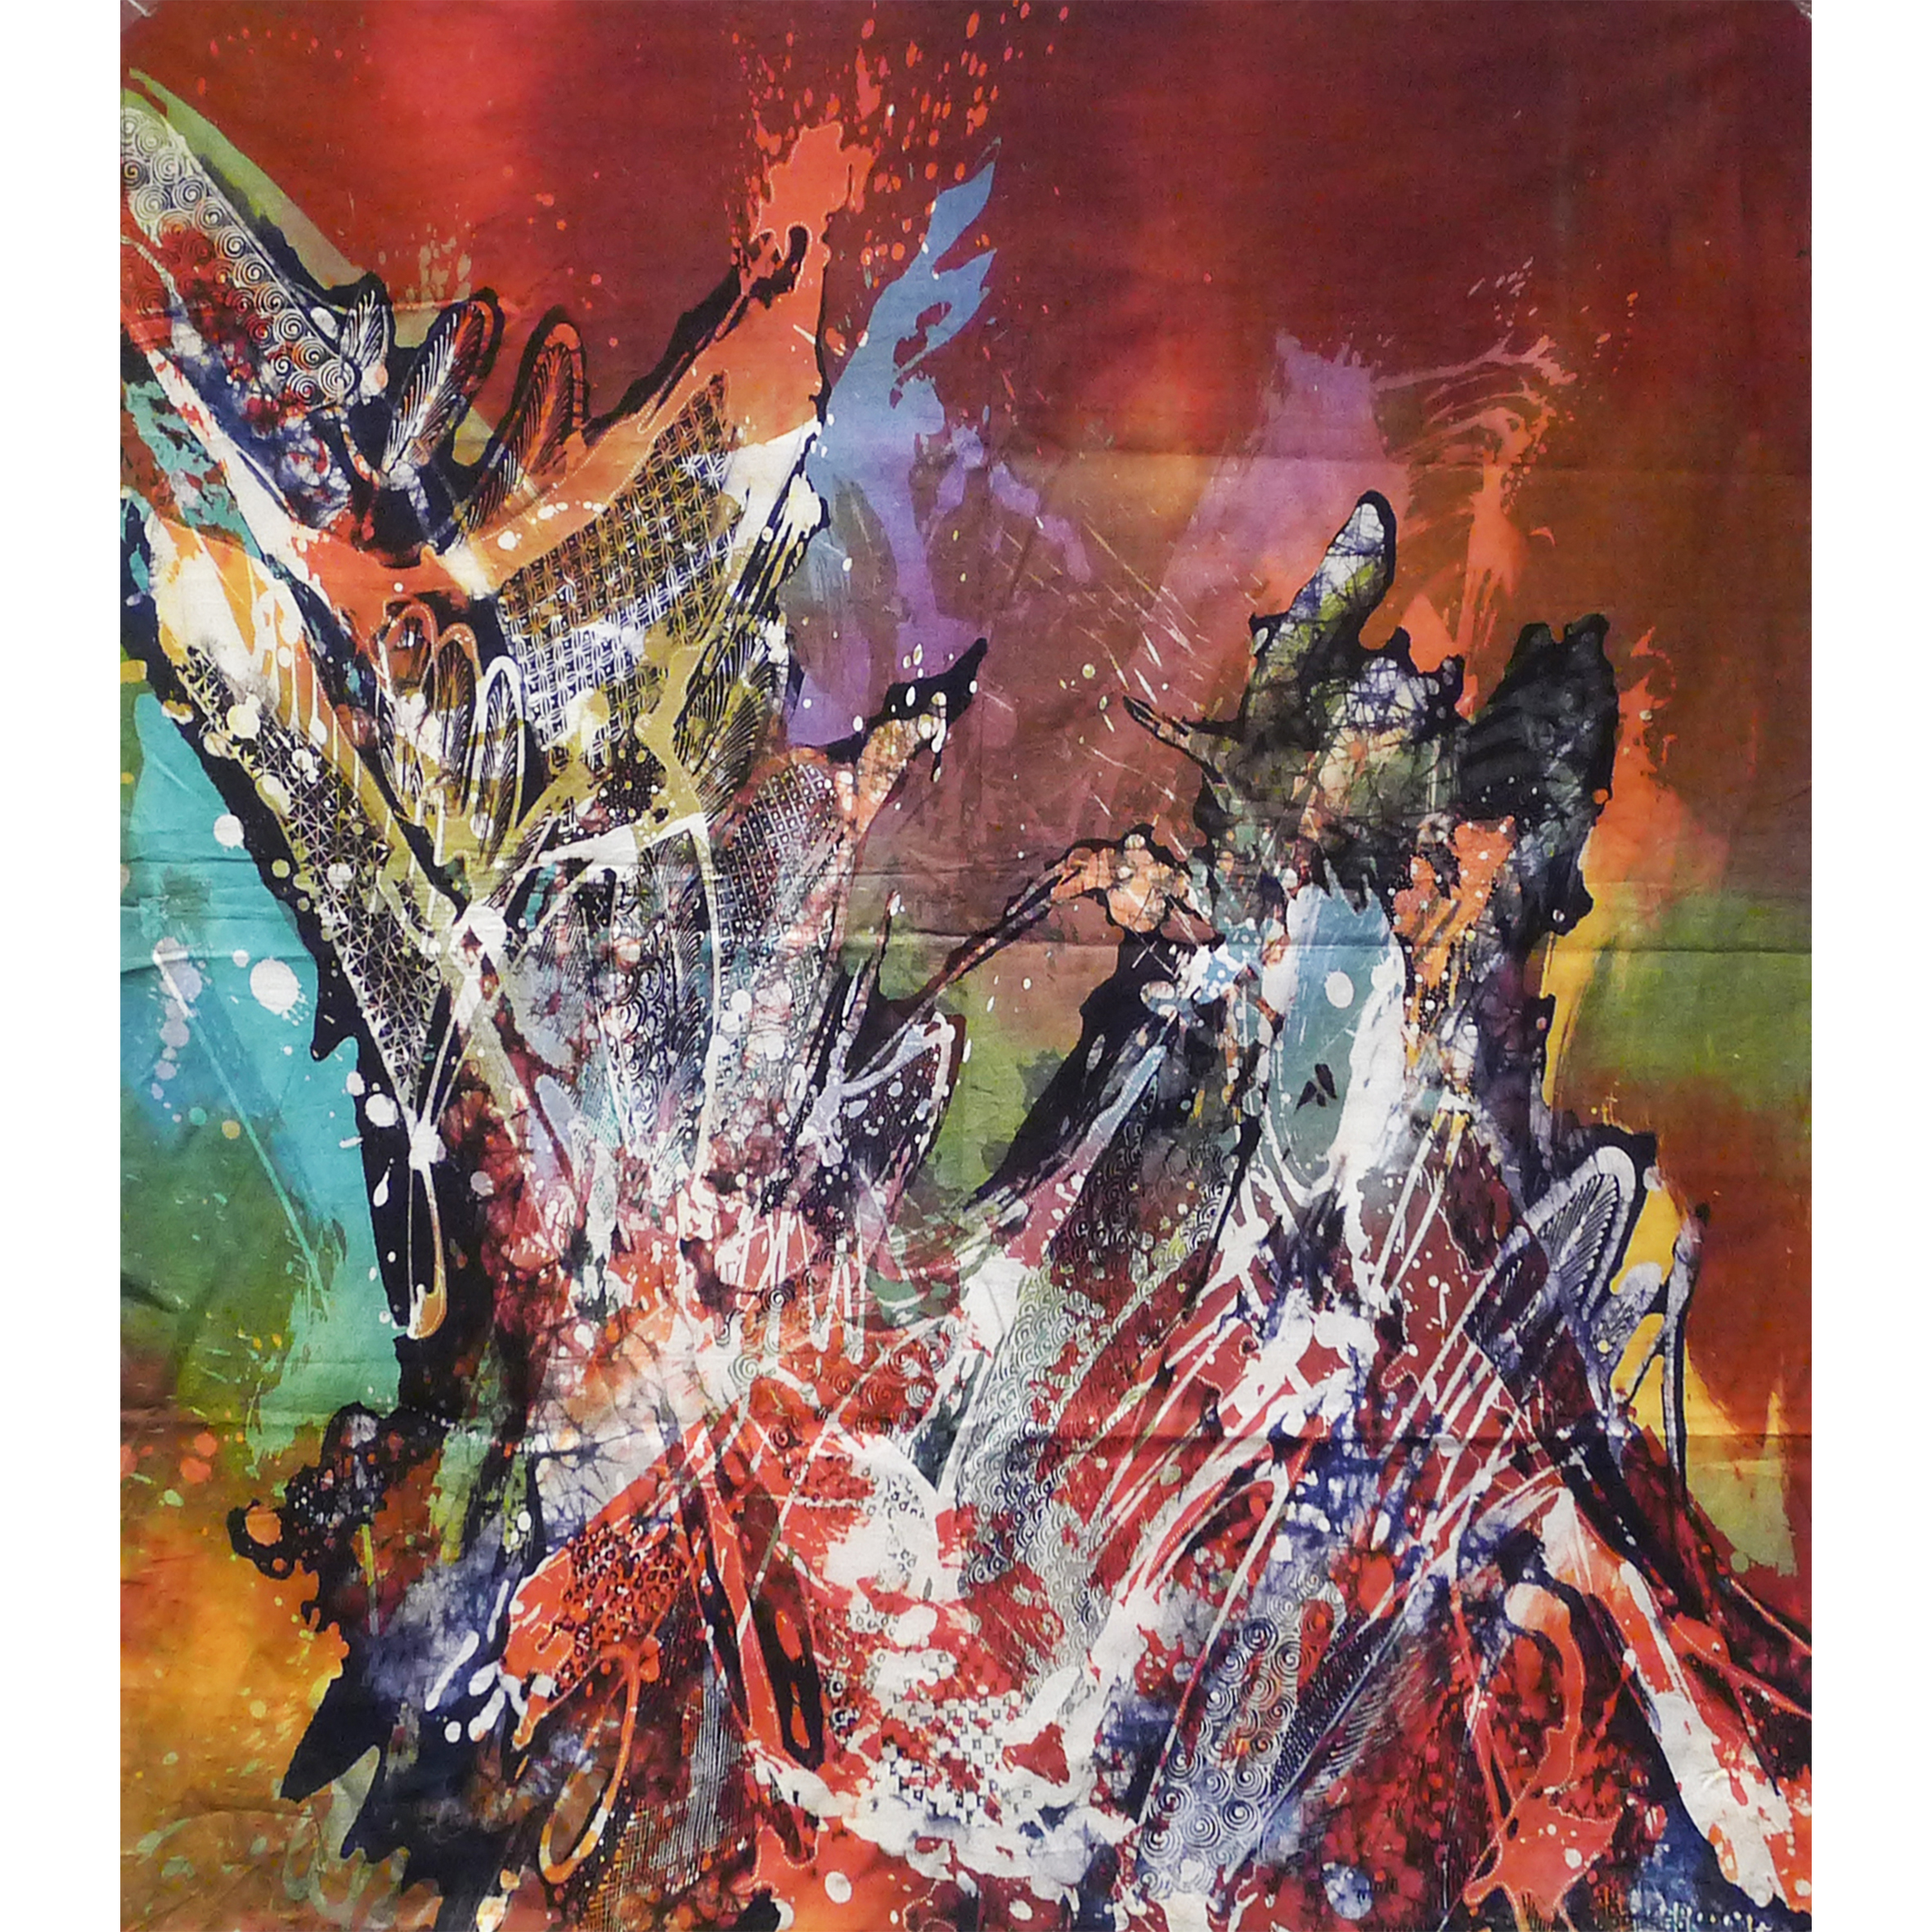 Hawaiian Reef, 1970s, Batik Painting on Cotton, 89x89cm.jpg